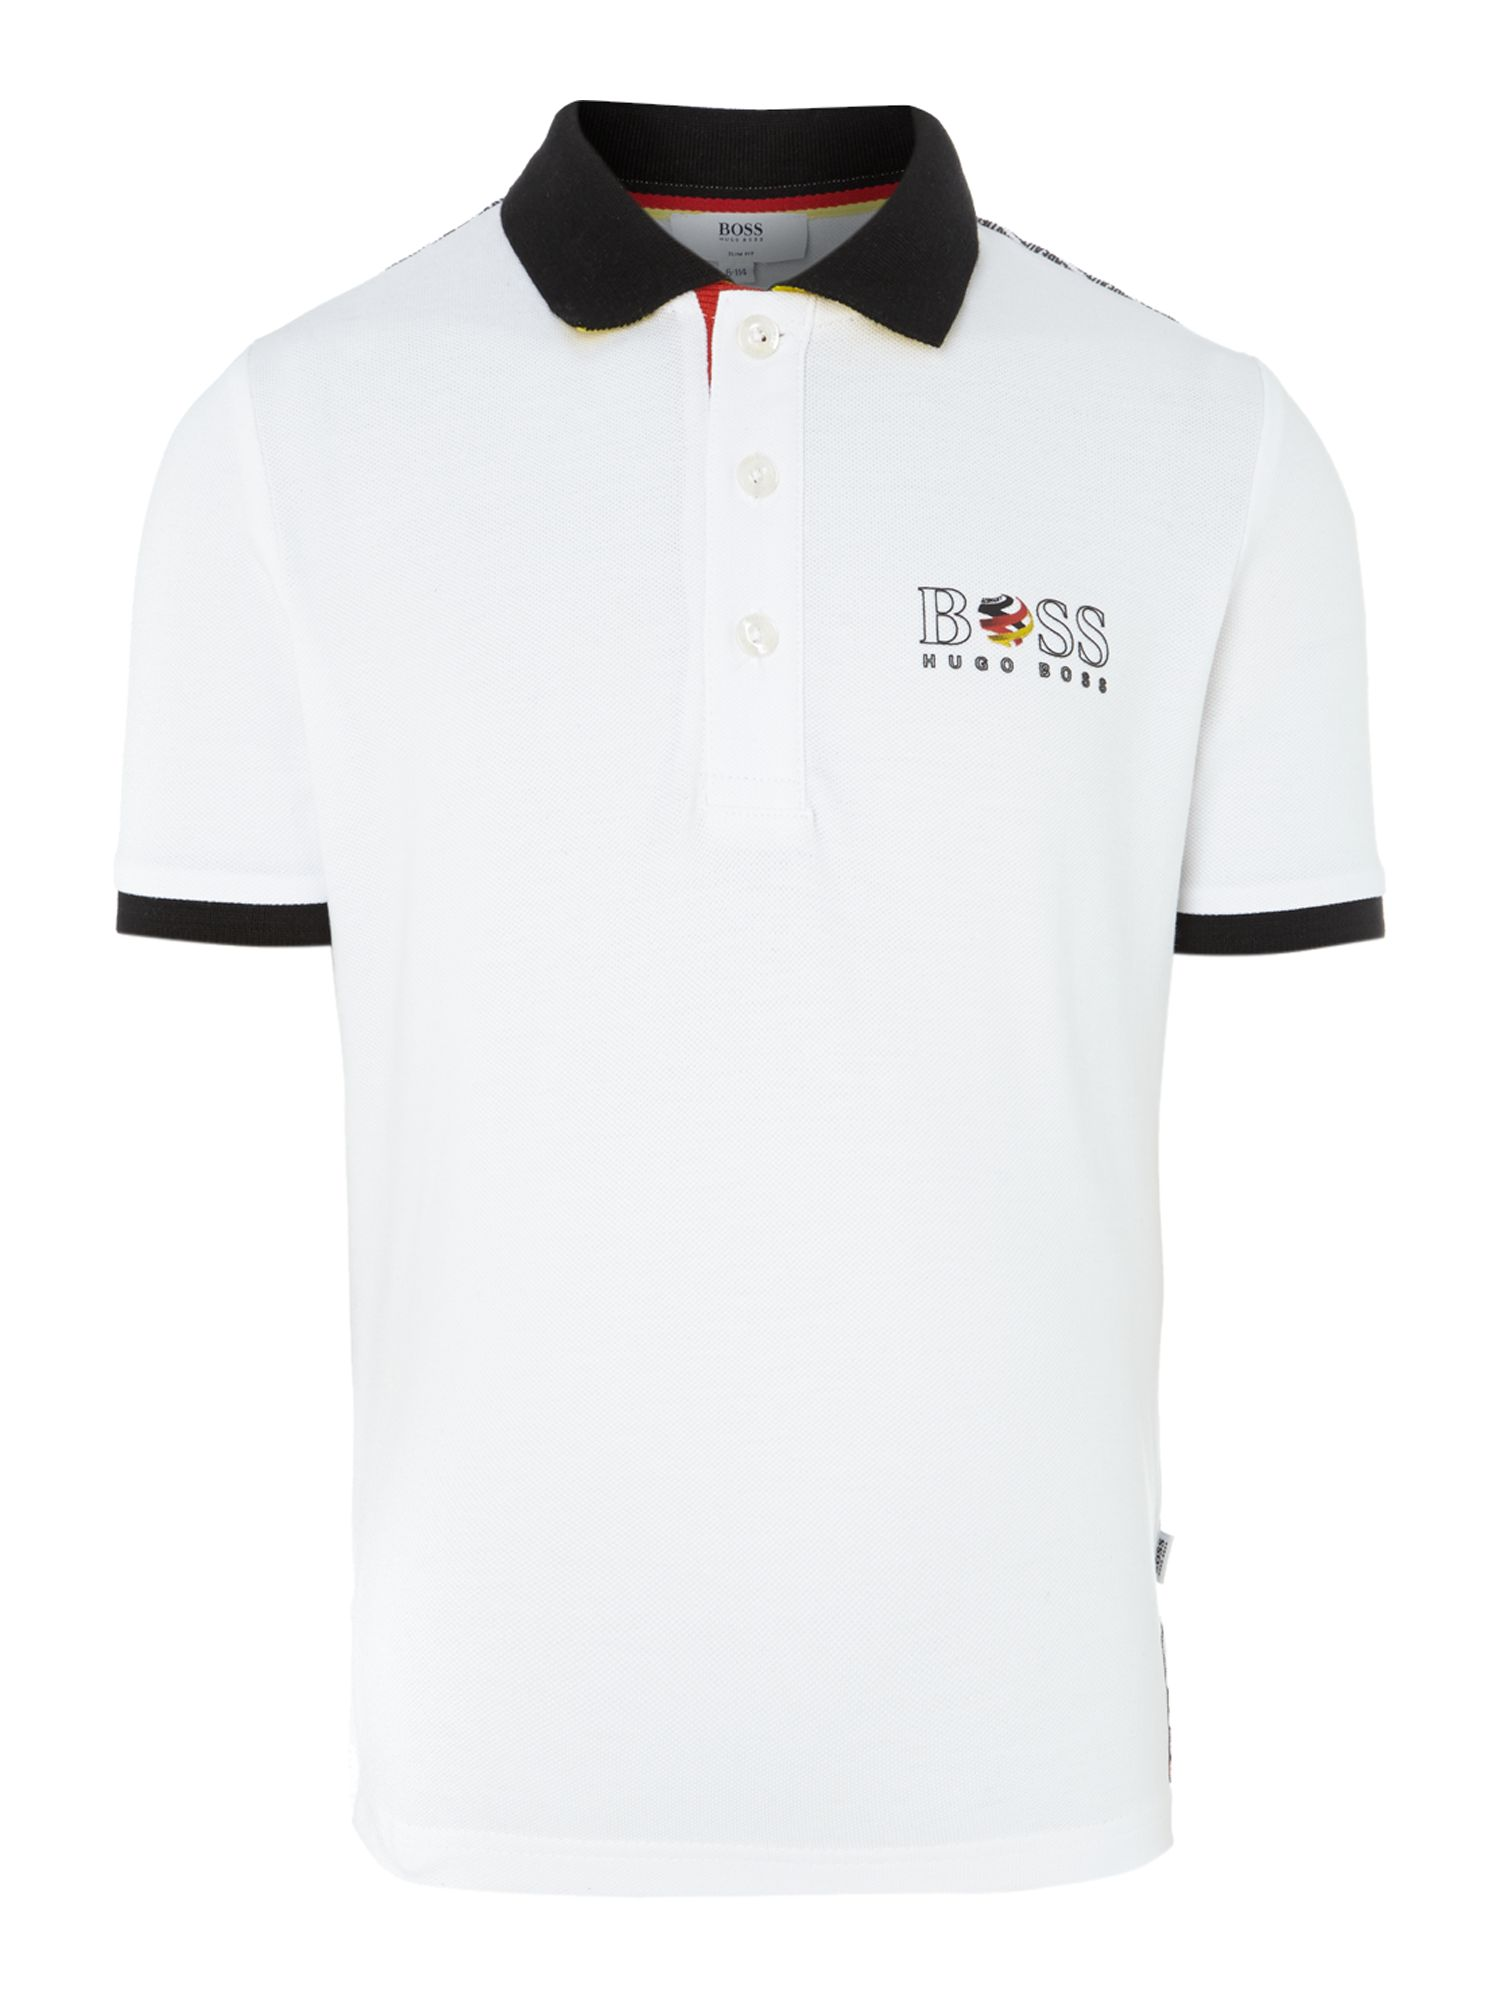 Kids Germany football colours polo shirt